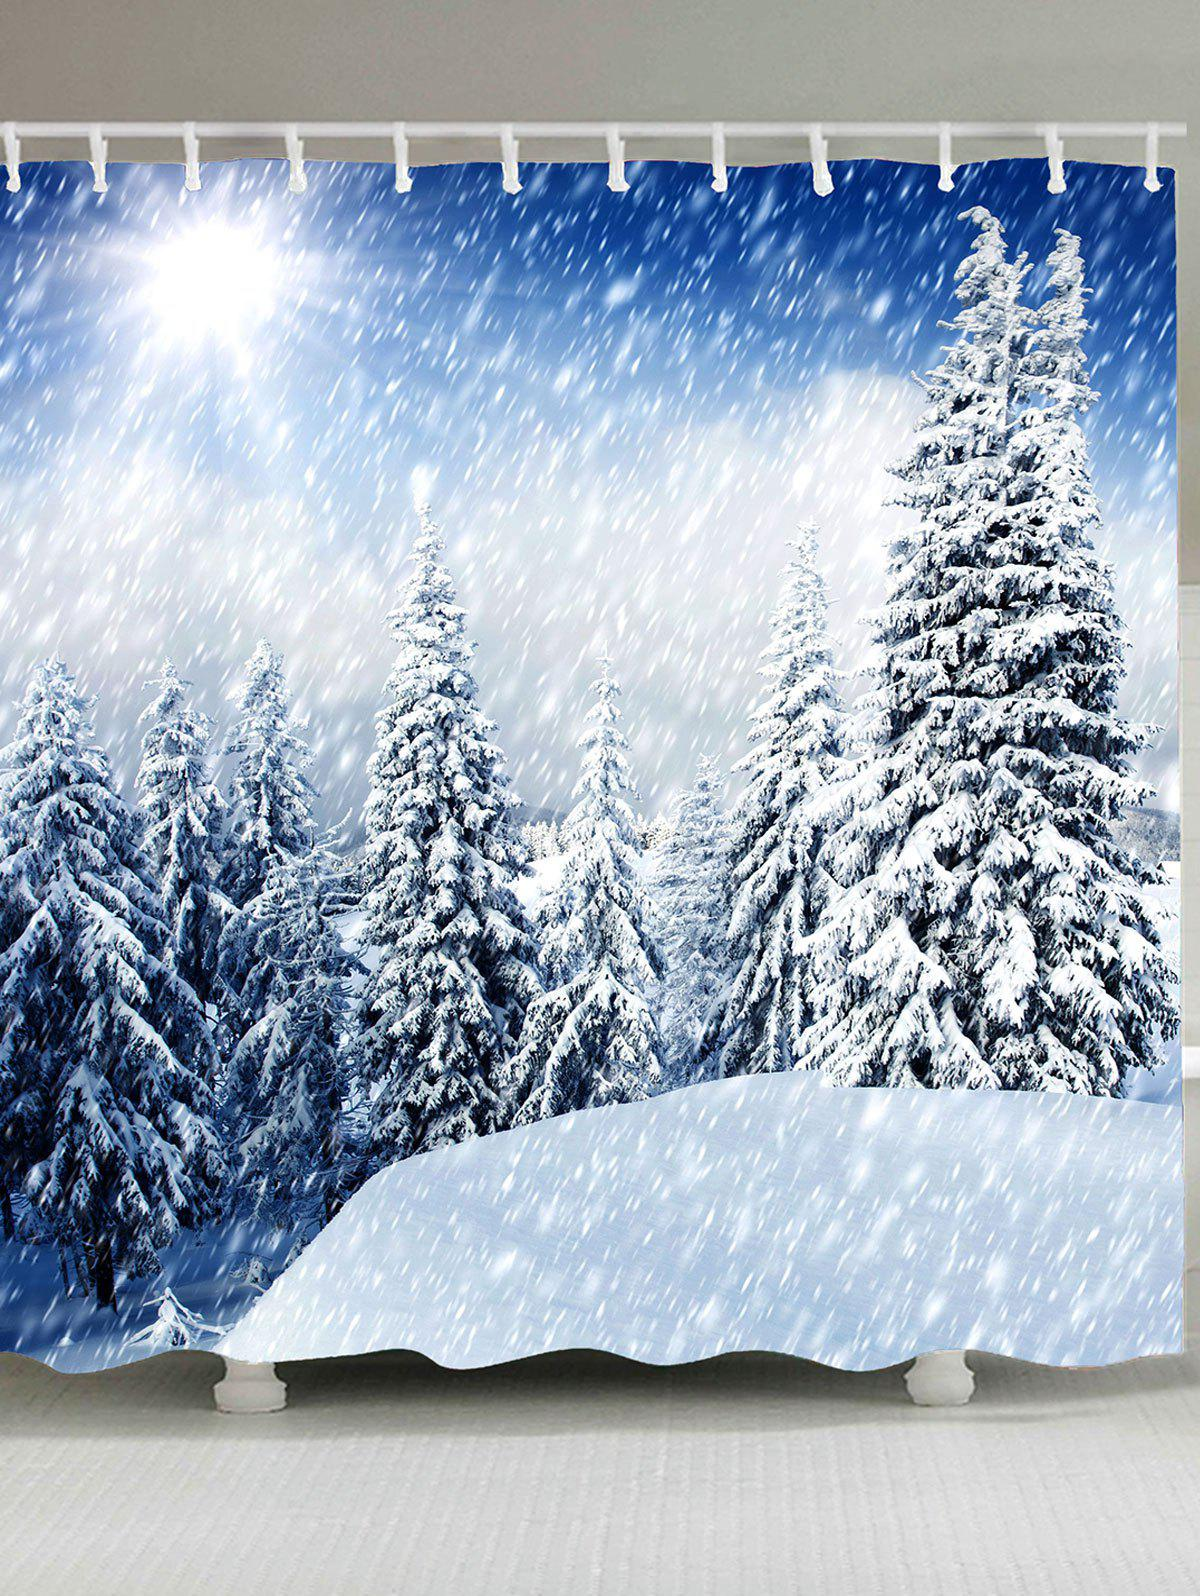 Forest Snowscape Patterned Shower Curtain forest snowscape patterned shower curtain